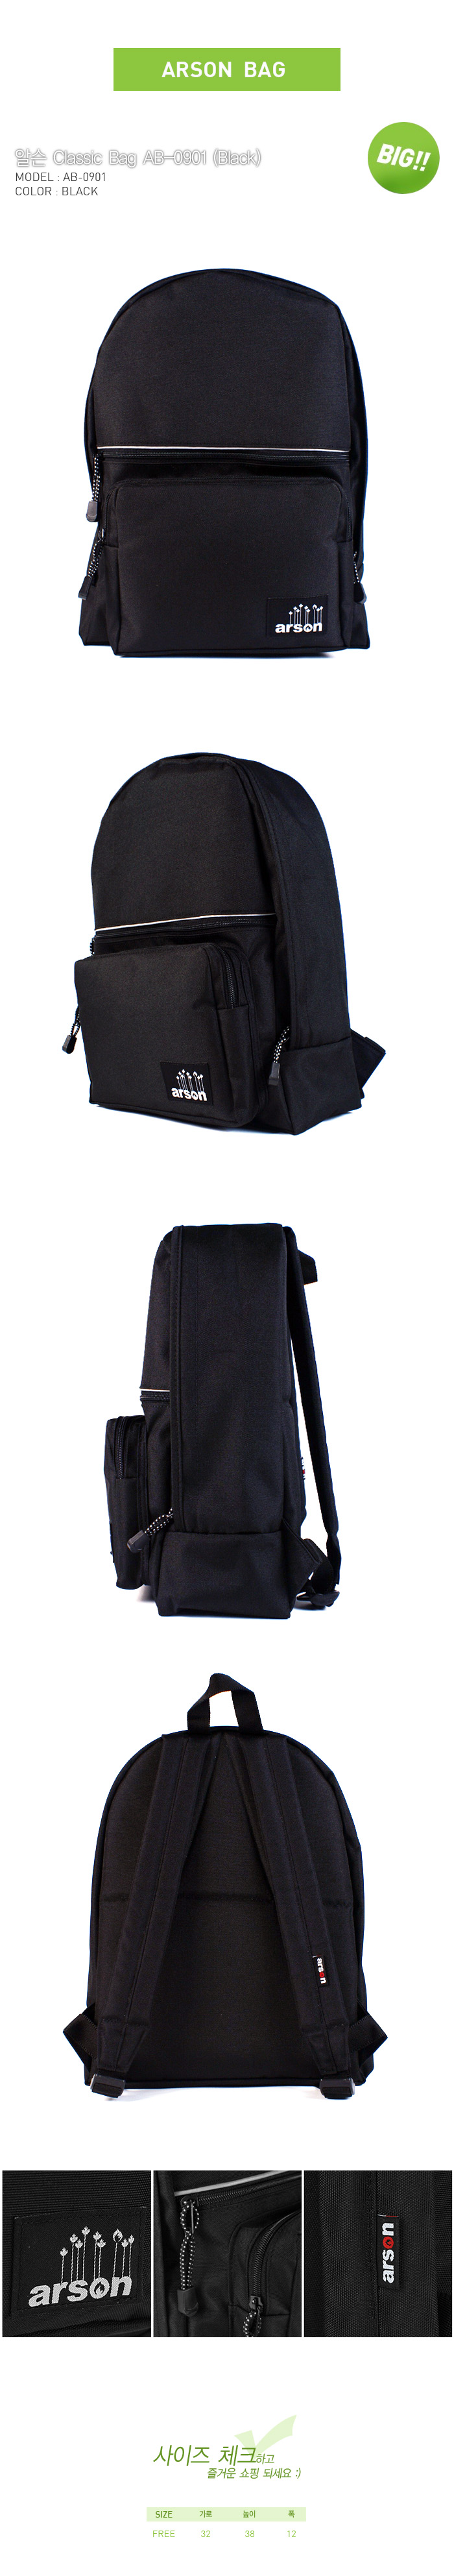 [ ARSON ] AB-0901 (Black)/Backpack School Bag